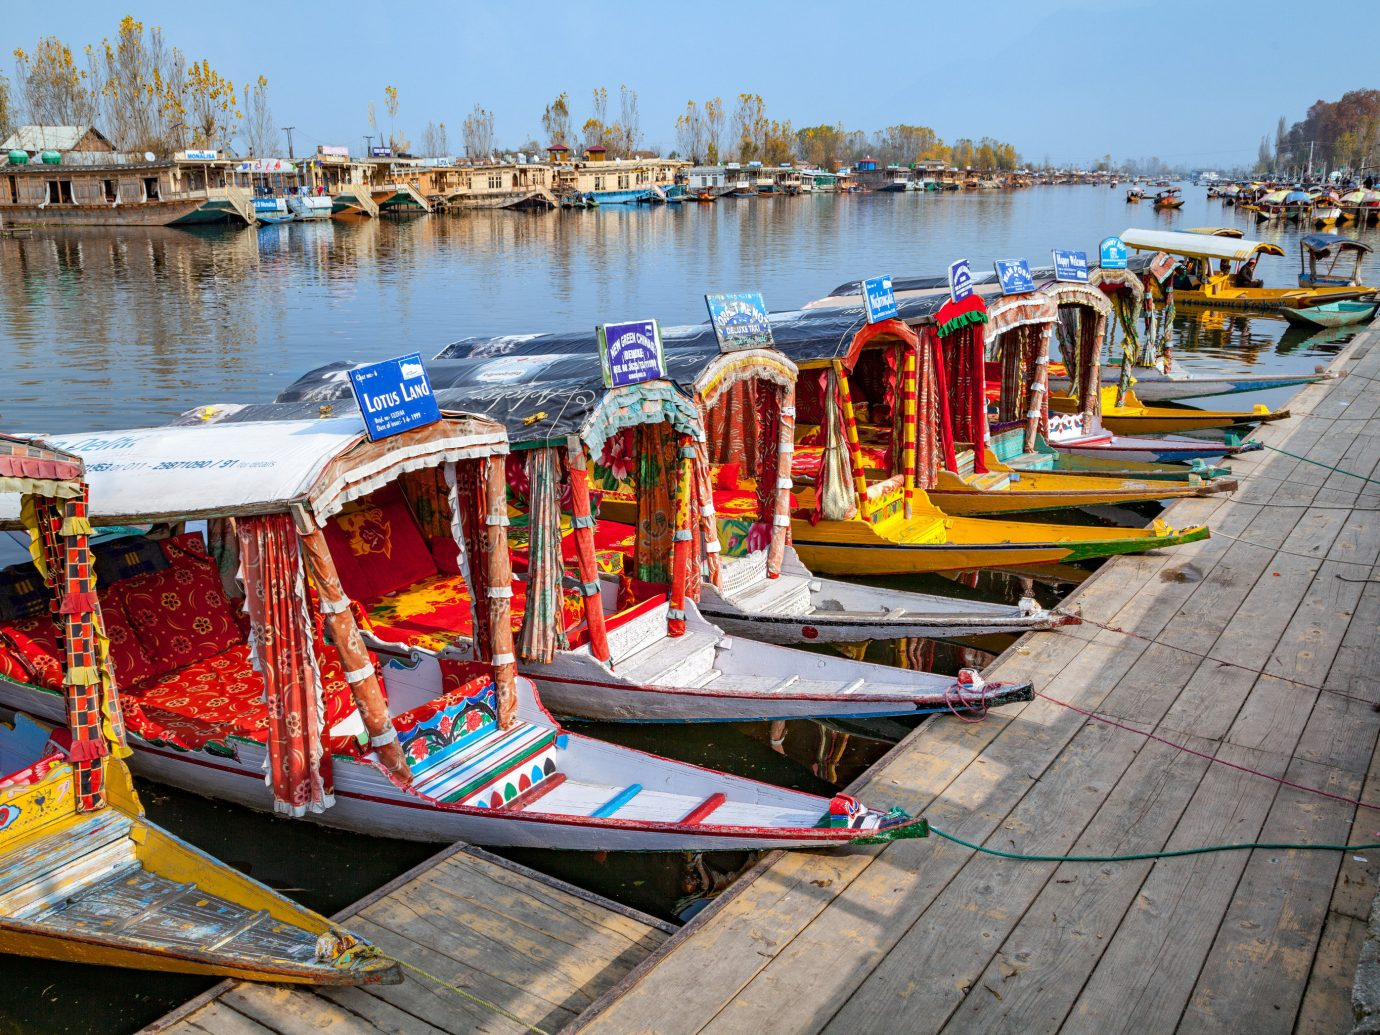 India Jaipur Jodhpur Trip Ideas sky outdoor water waterway body of water water transportation scene Boat boating watercraft Harbor recreation Canal watercraft rowing vehicle tourism dock leisure channel lined several line colored